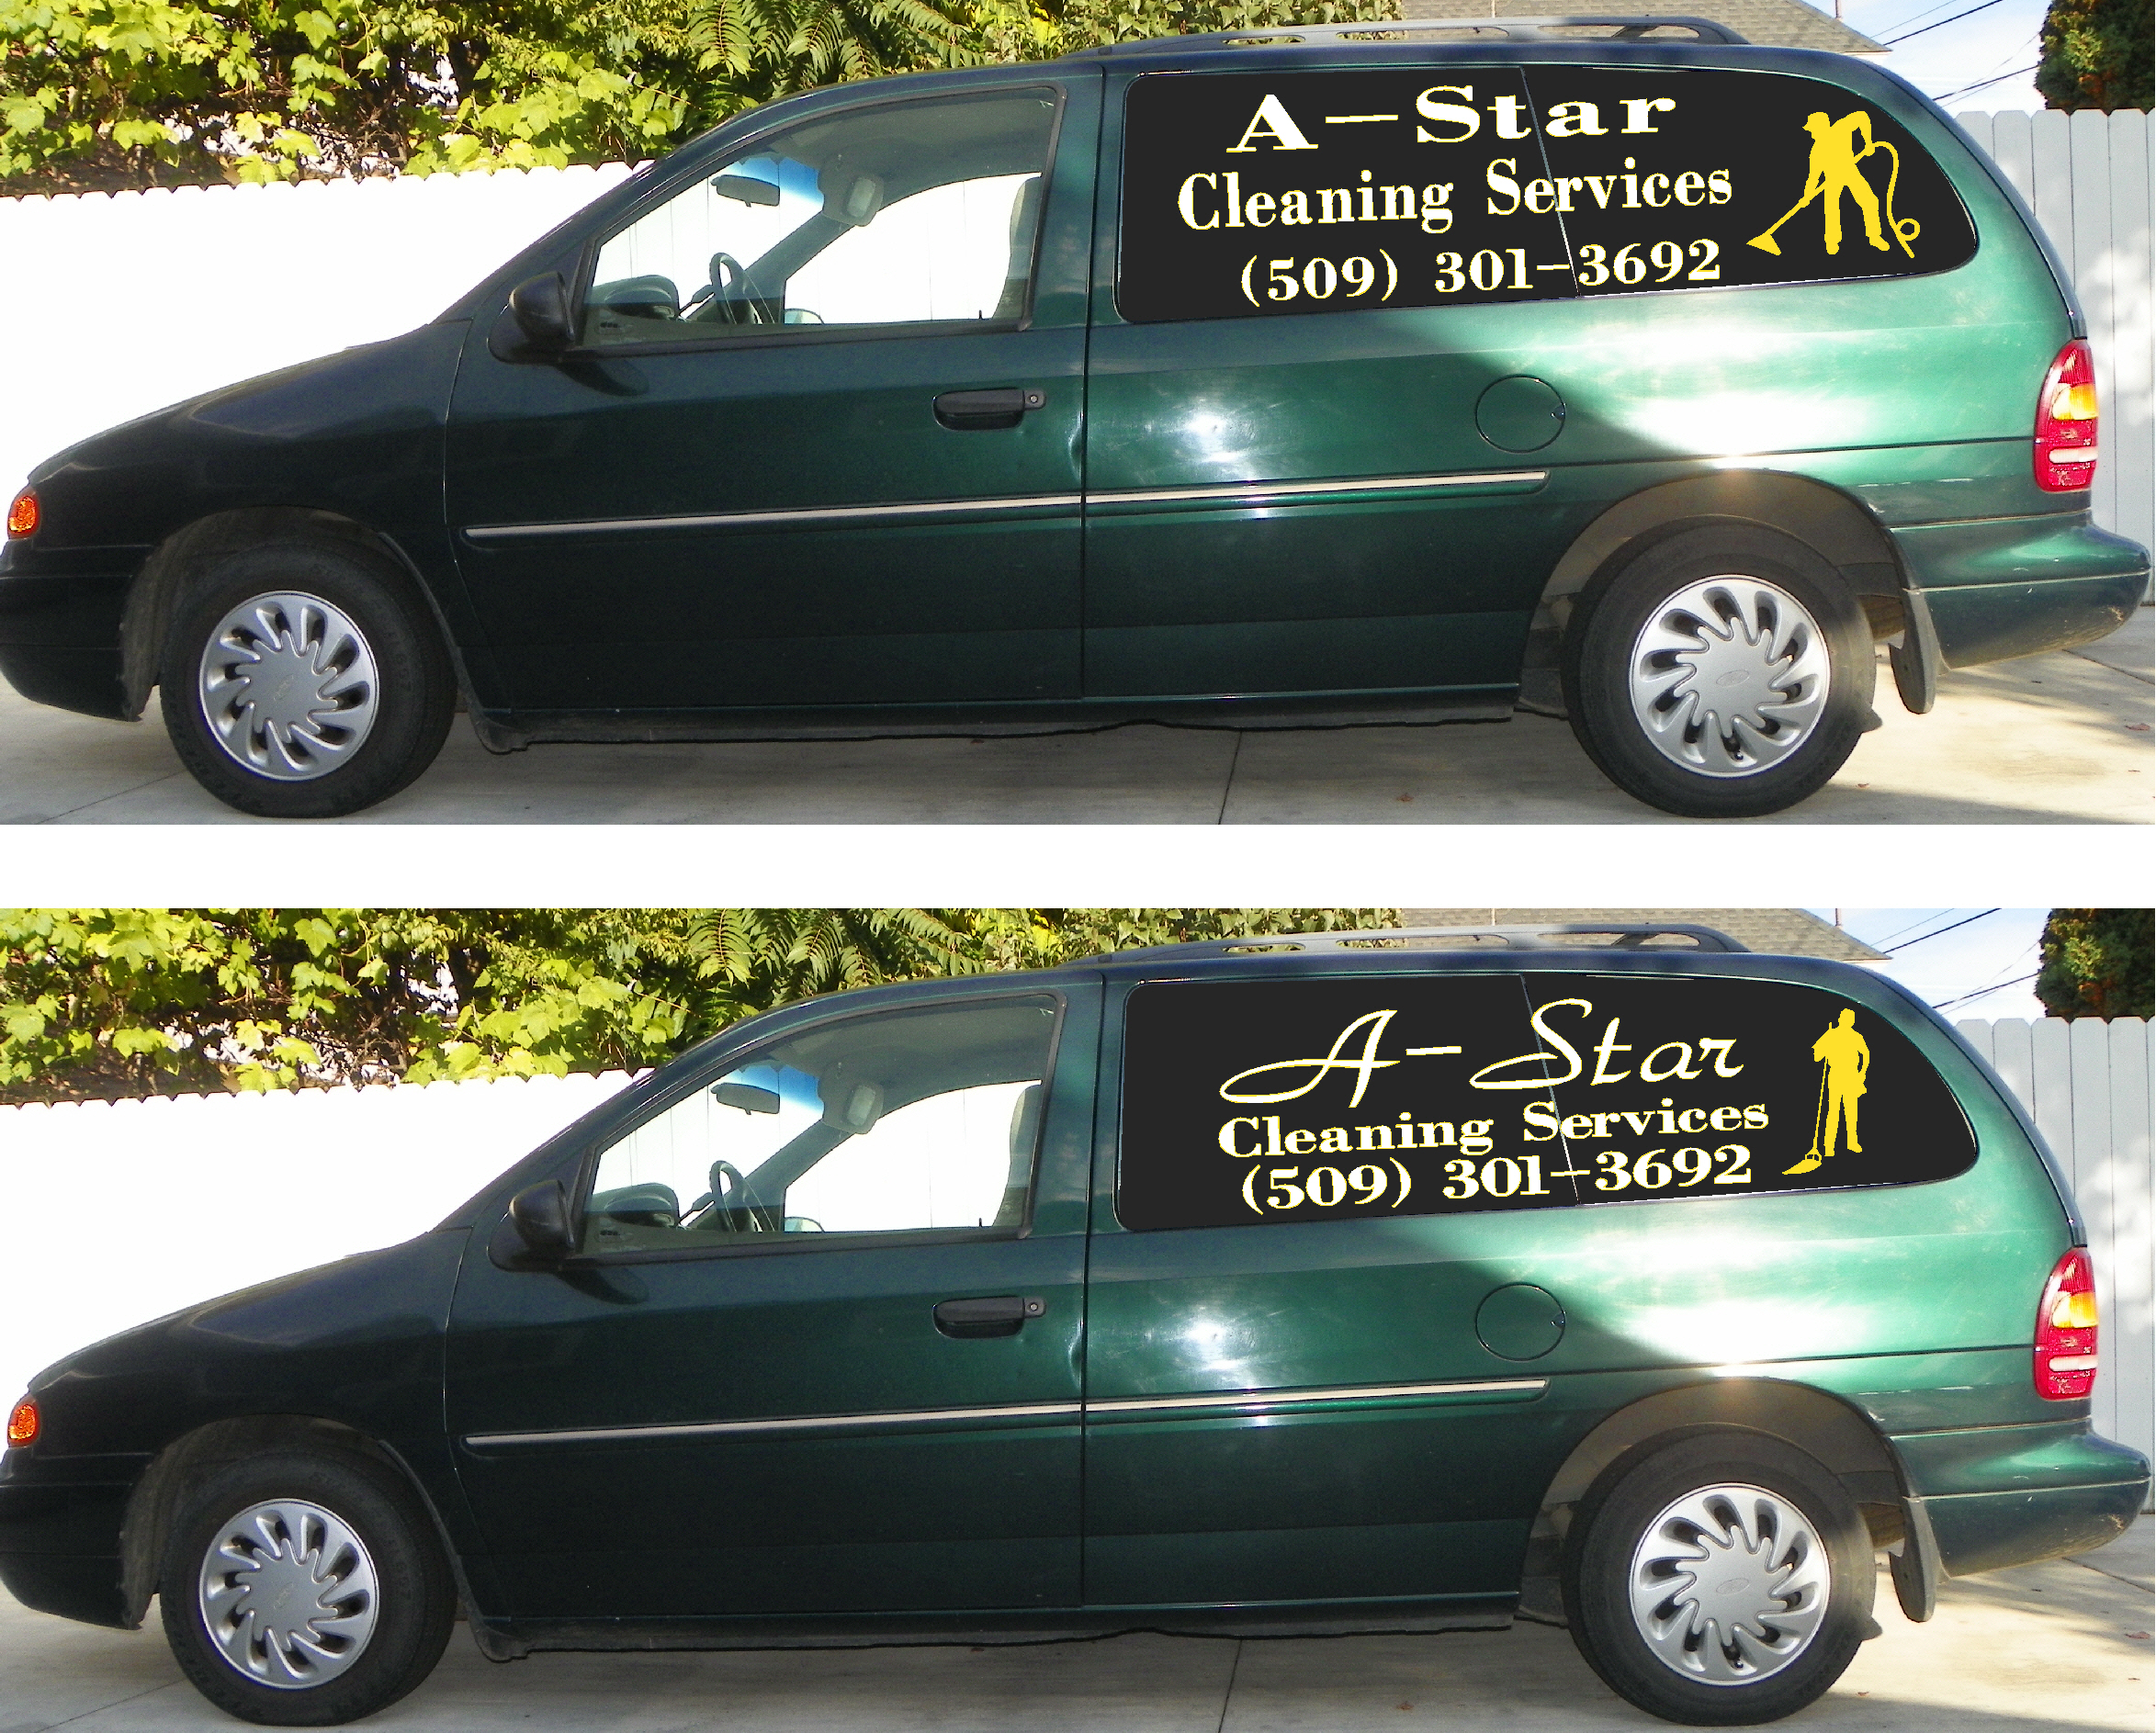 A-Star Cleaning Service.JPG